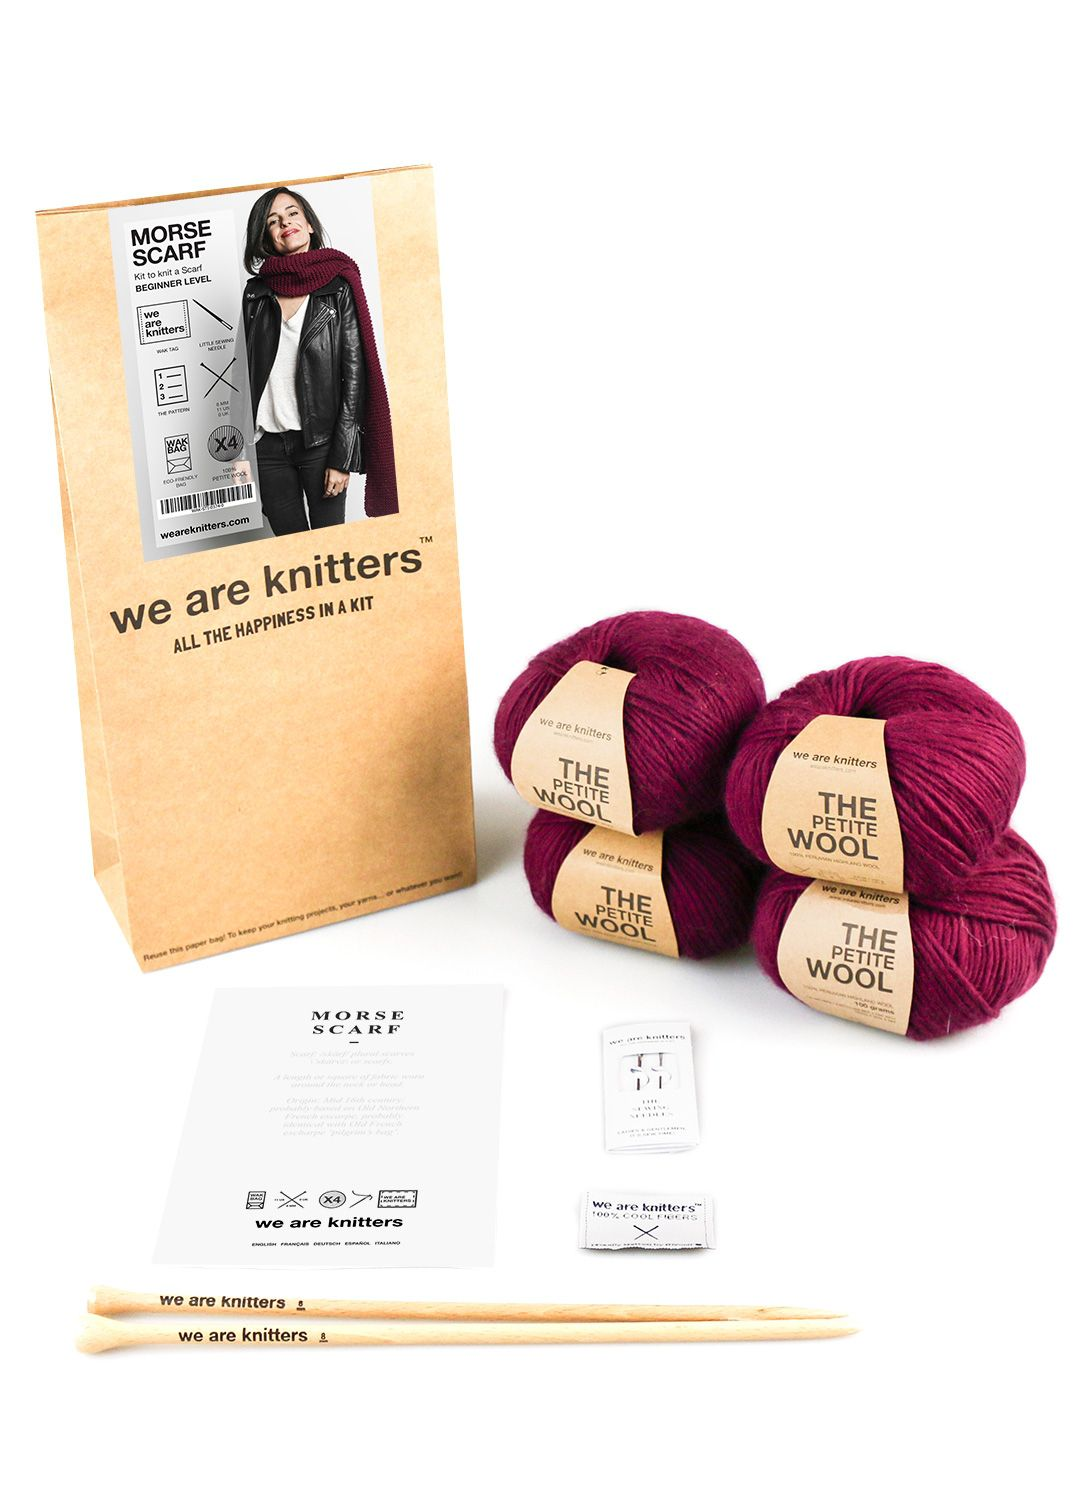 We are Knitters Morse Scarf Knitting Kit